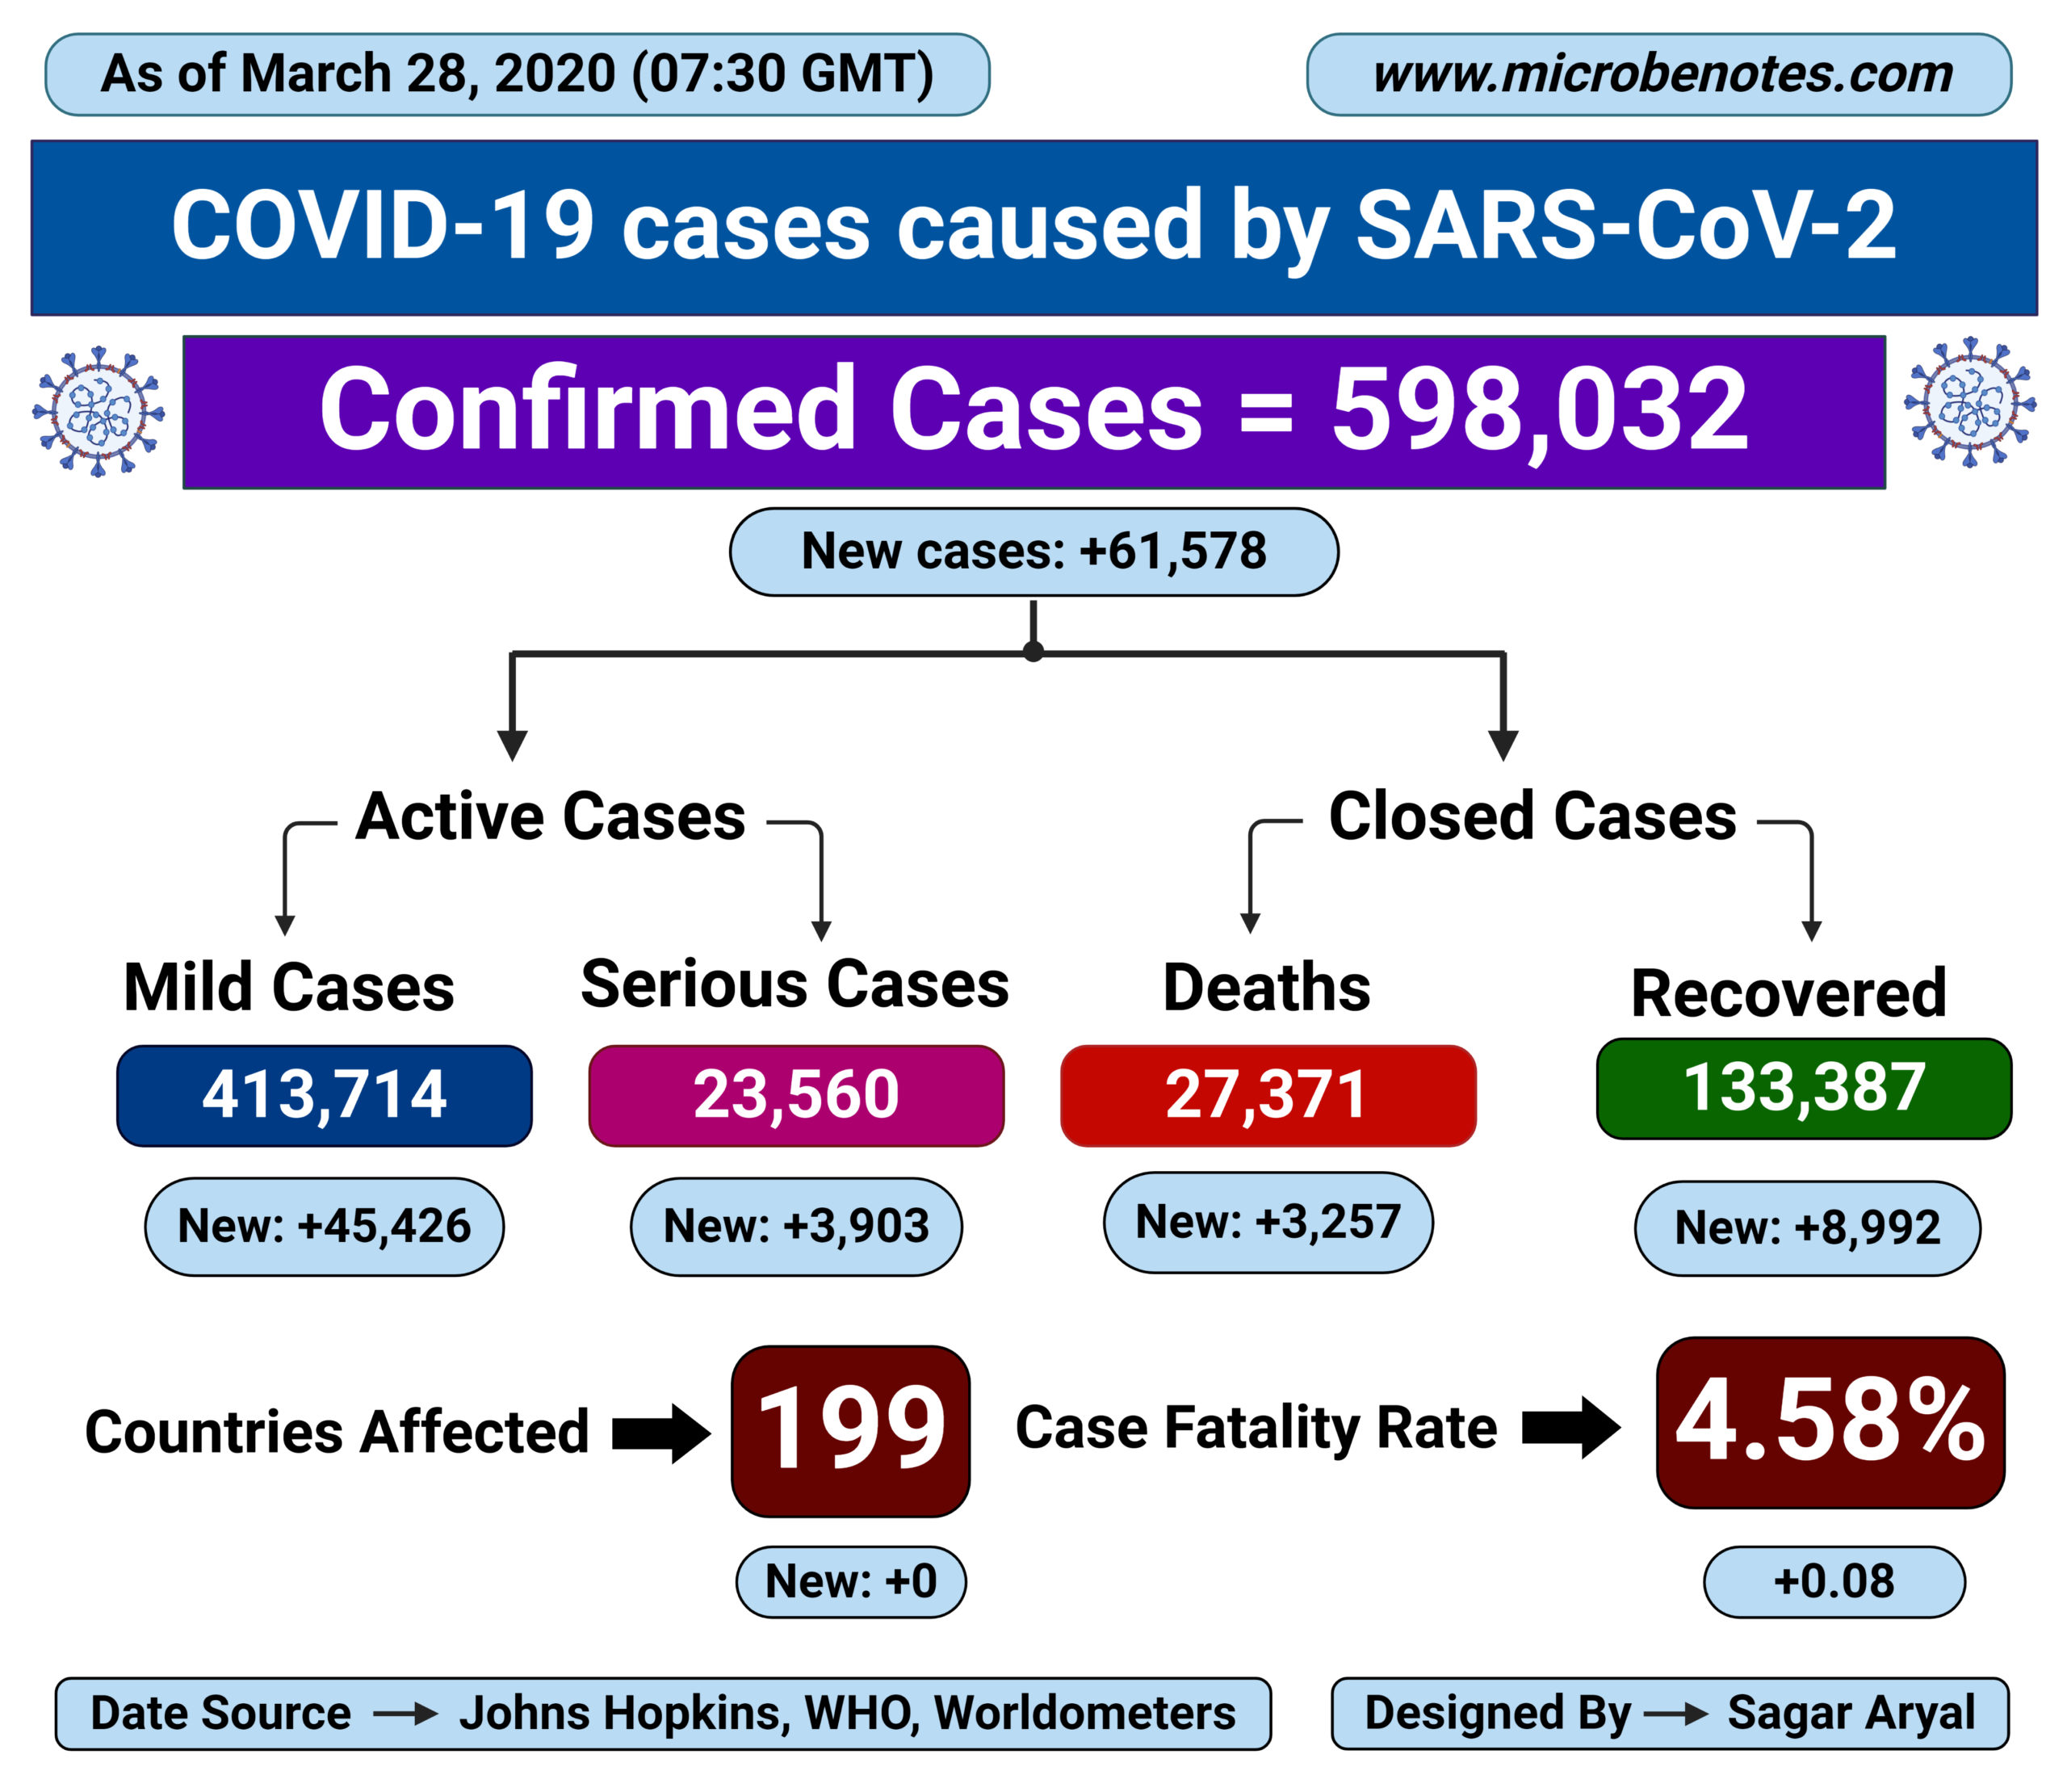 Epidemiology of COVID-19 caused by SARS-CoV-2 as of March 28, 2020